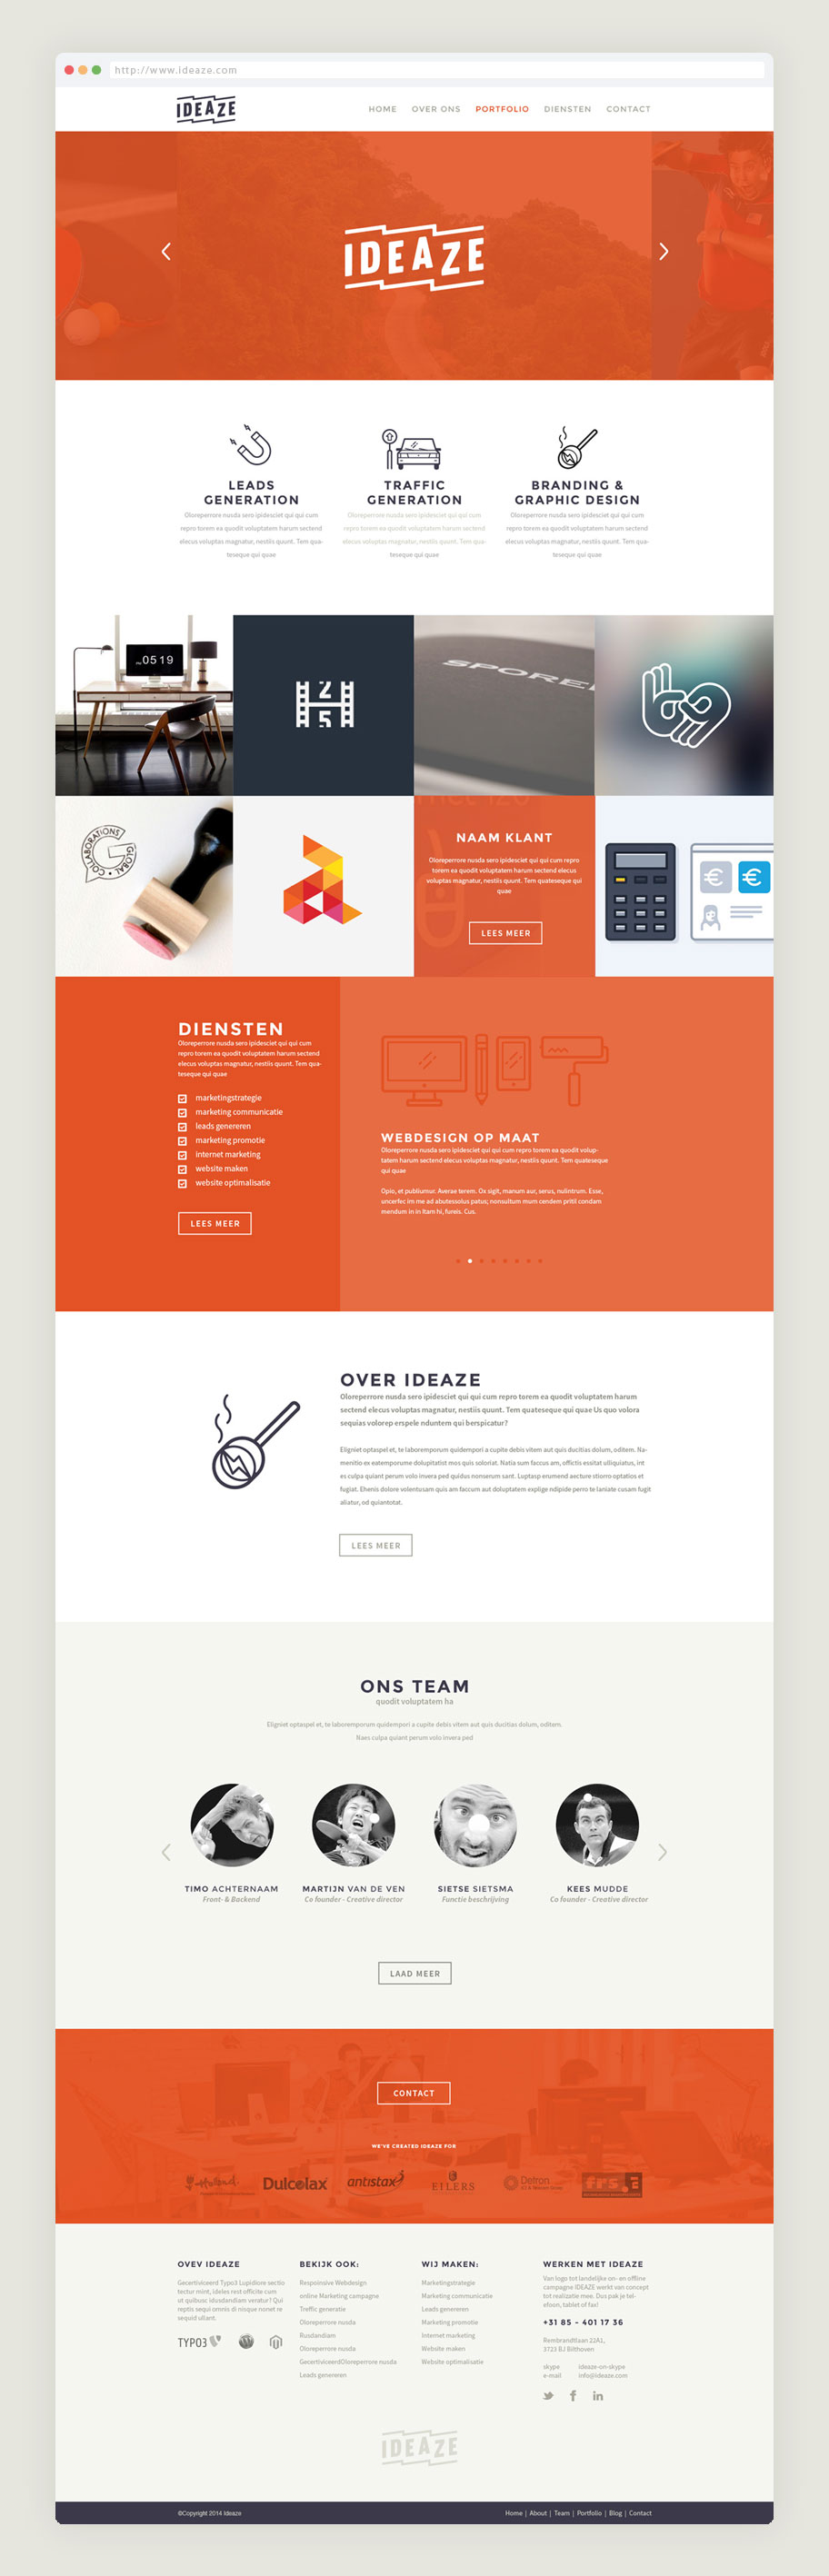 New-web-design-clean-FKKR-web-ontwerp-home-page